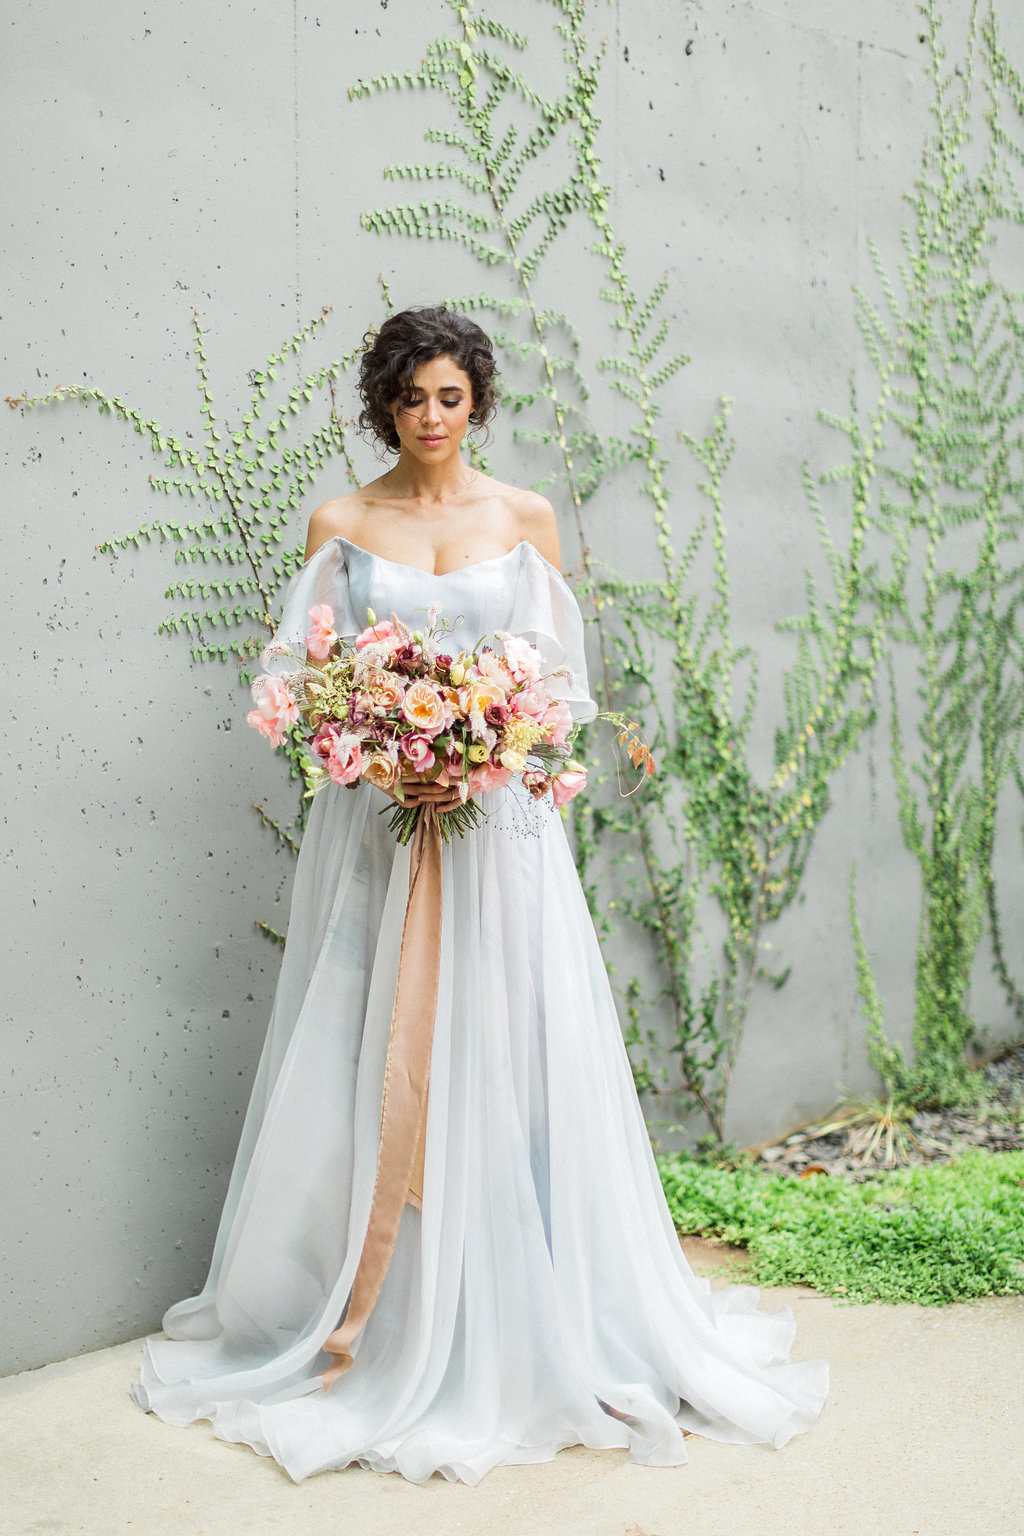 Cloudy Day Wedding Inspiration with a Hand Painted Bridal Gown - https://ruffledblog.com/cloudy-day-wedding-inspiration-with-a-hand-painted-bridal-gown